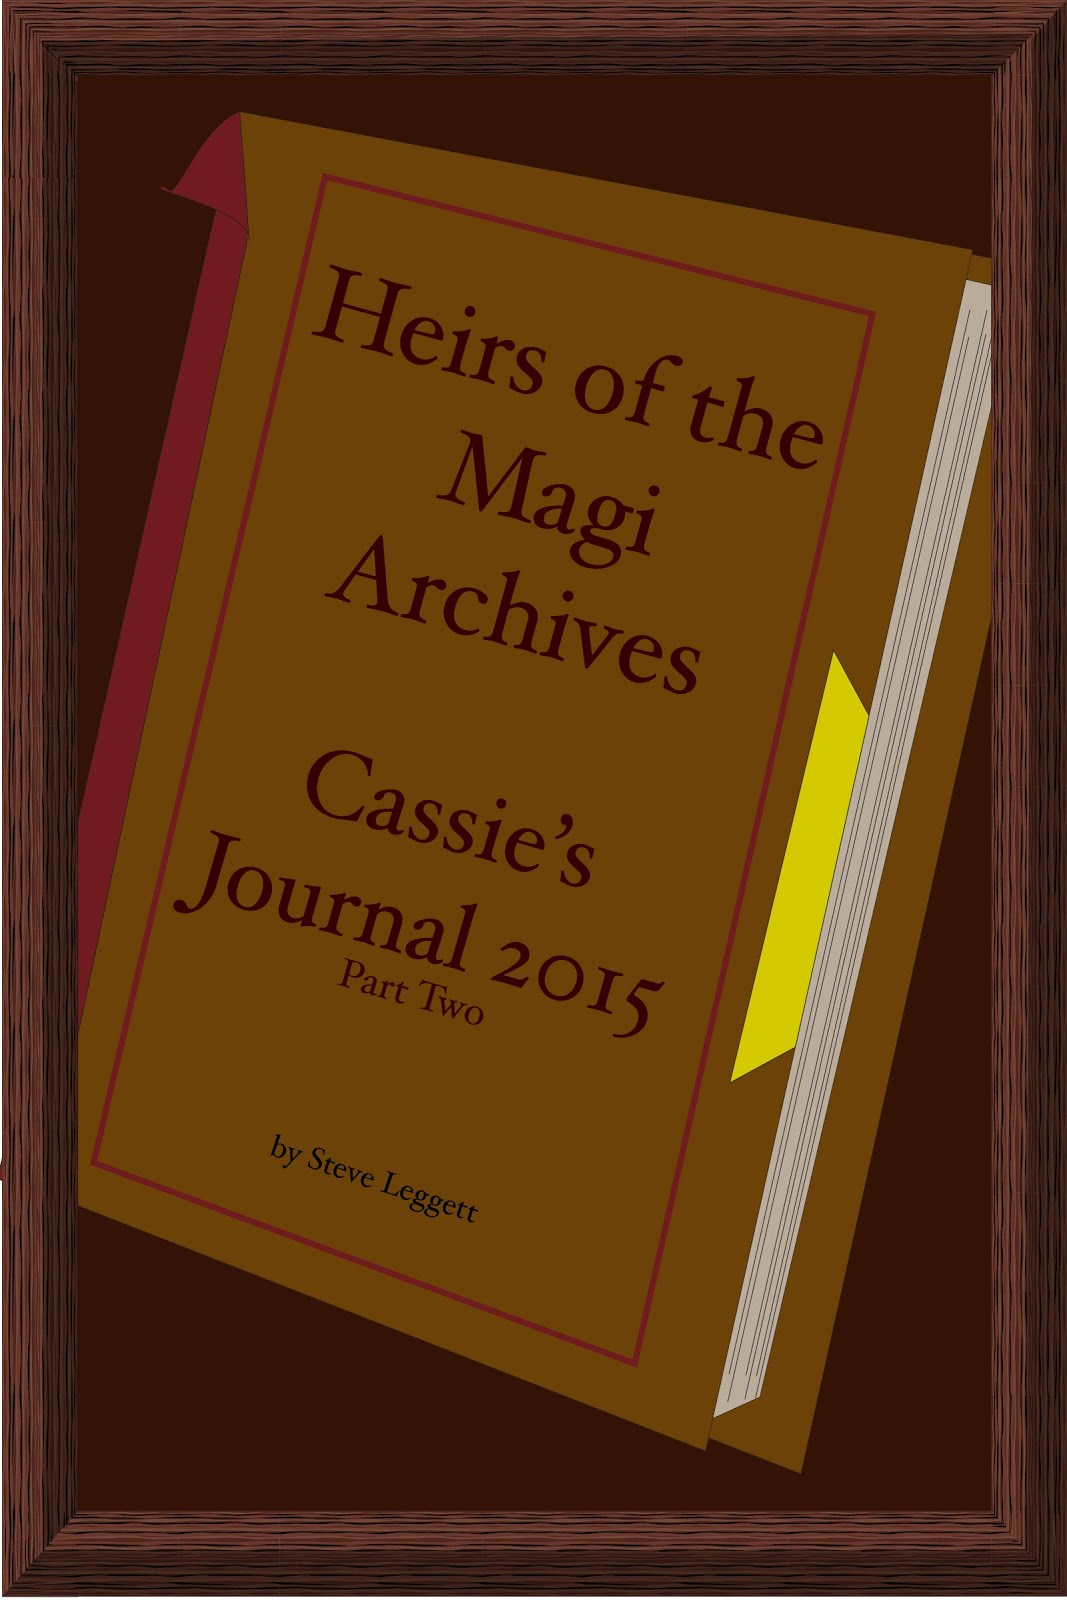 Cassie's Journal 2015 - Part Two